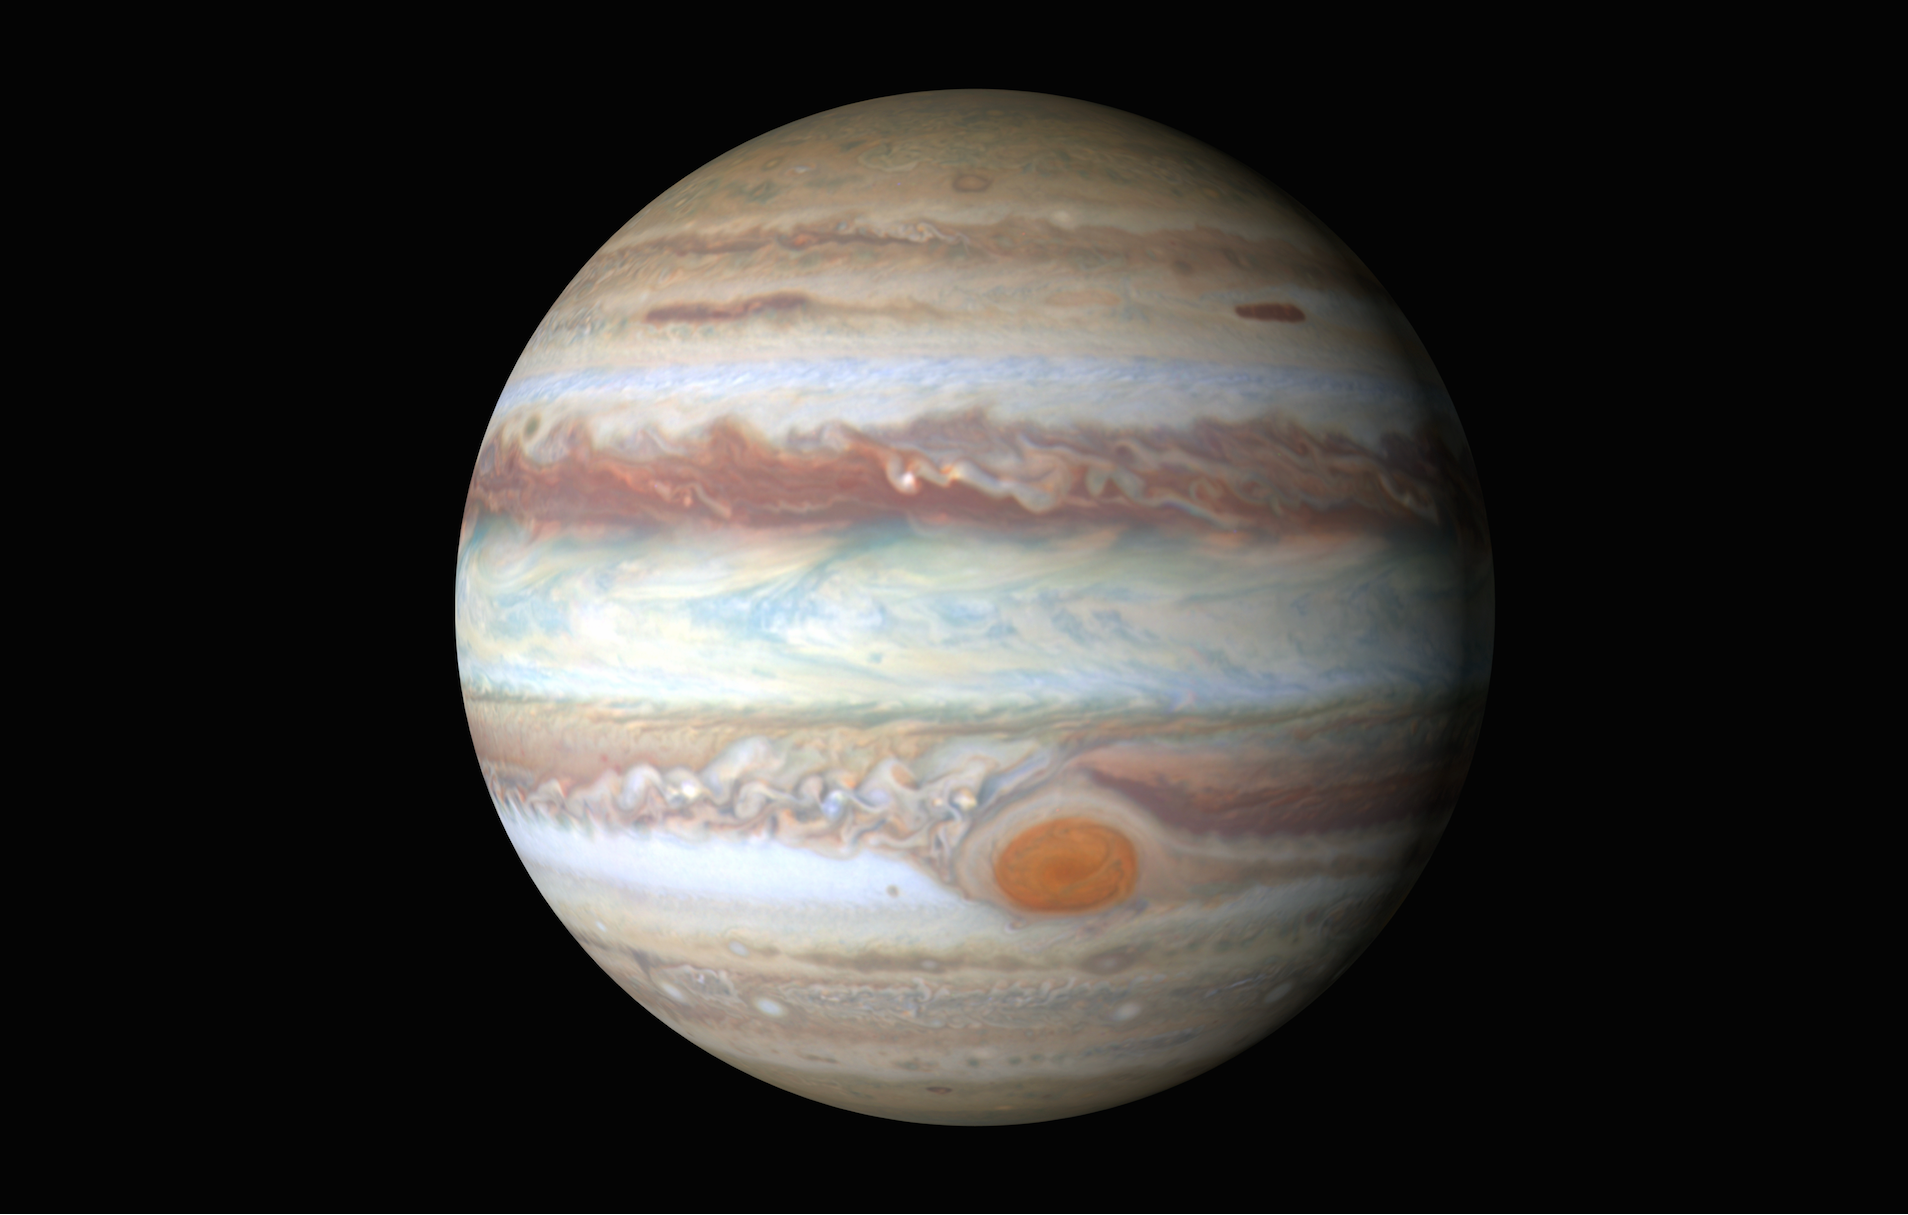 In hindi jupiter